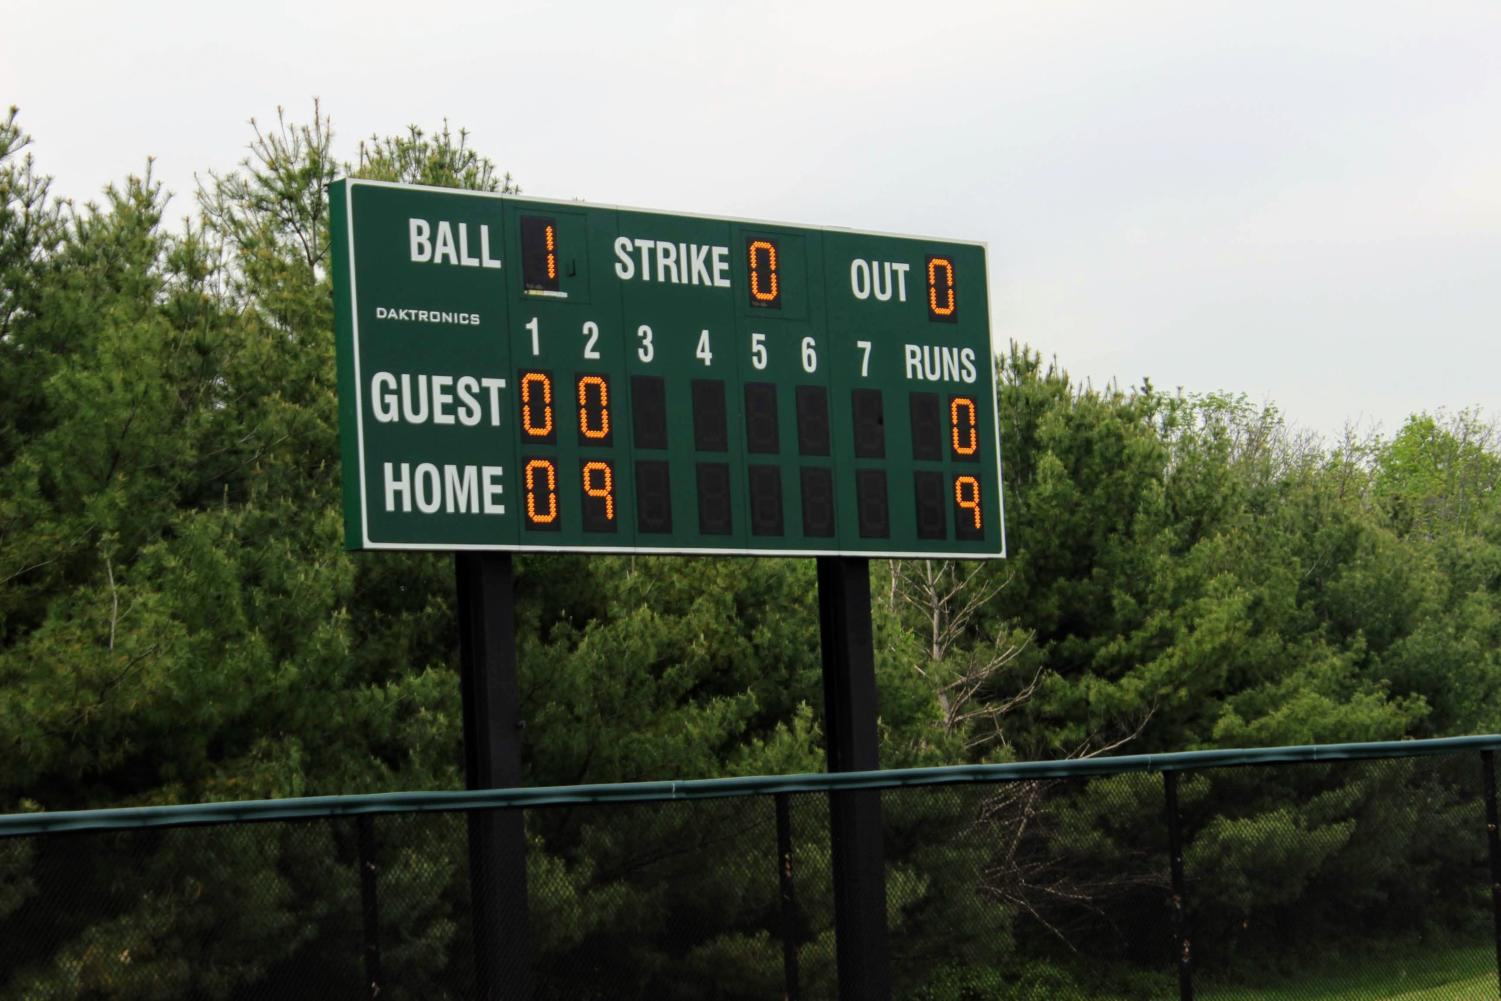 The+Warriors+gained+a+nine-run+lead+against+Pottstown+by+the+end+of+the+second+inning.%0A